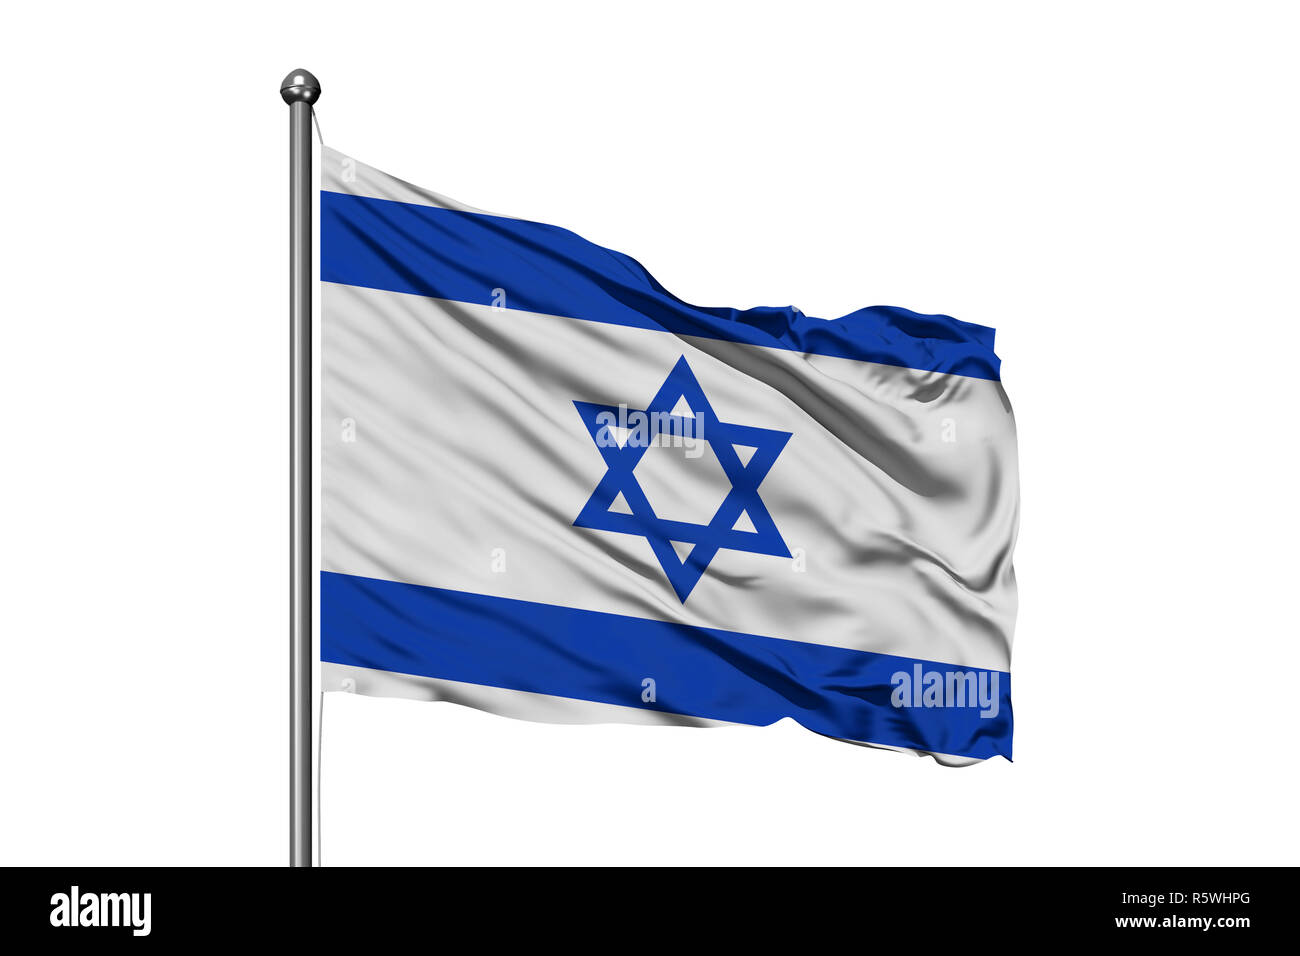 Flag of Israel waving in the wind, isolated white background. Israeli flag. Stock Photo